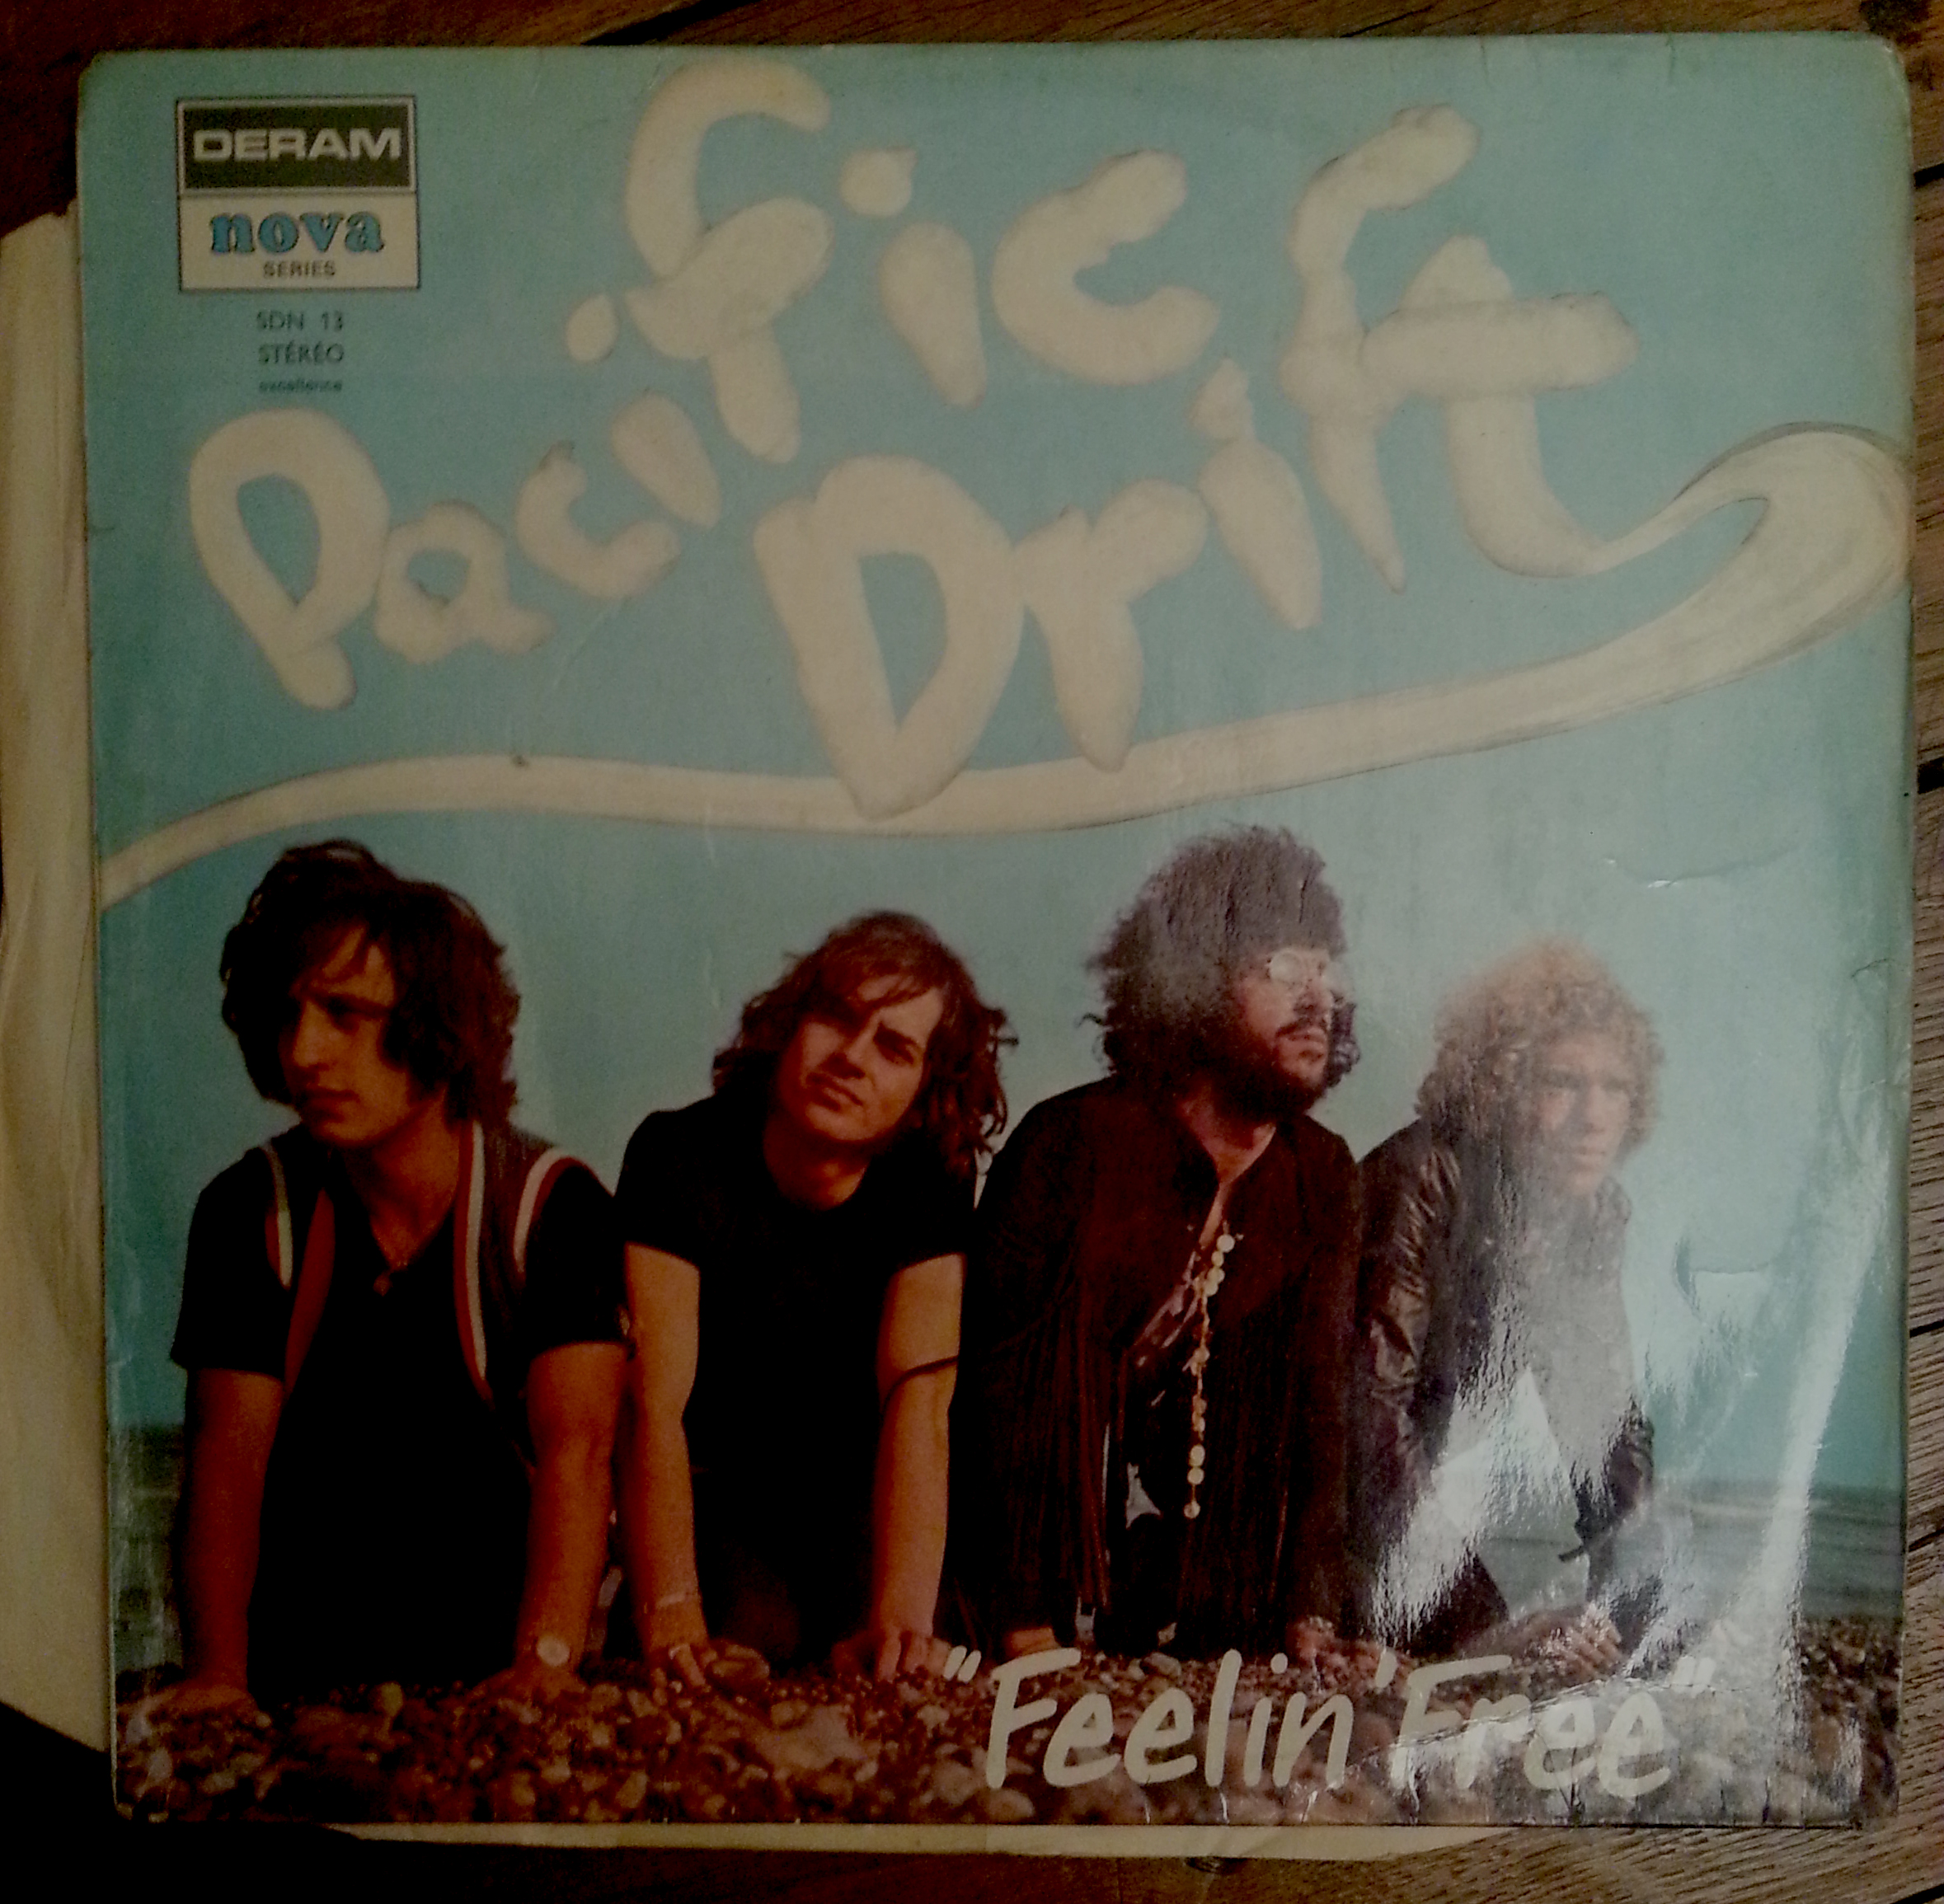 Pacific Drift – Feelin' free (1970)